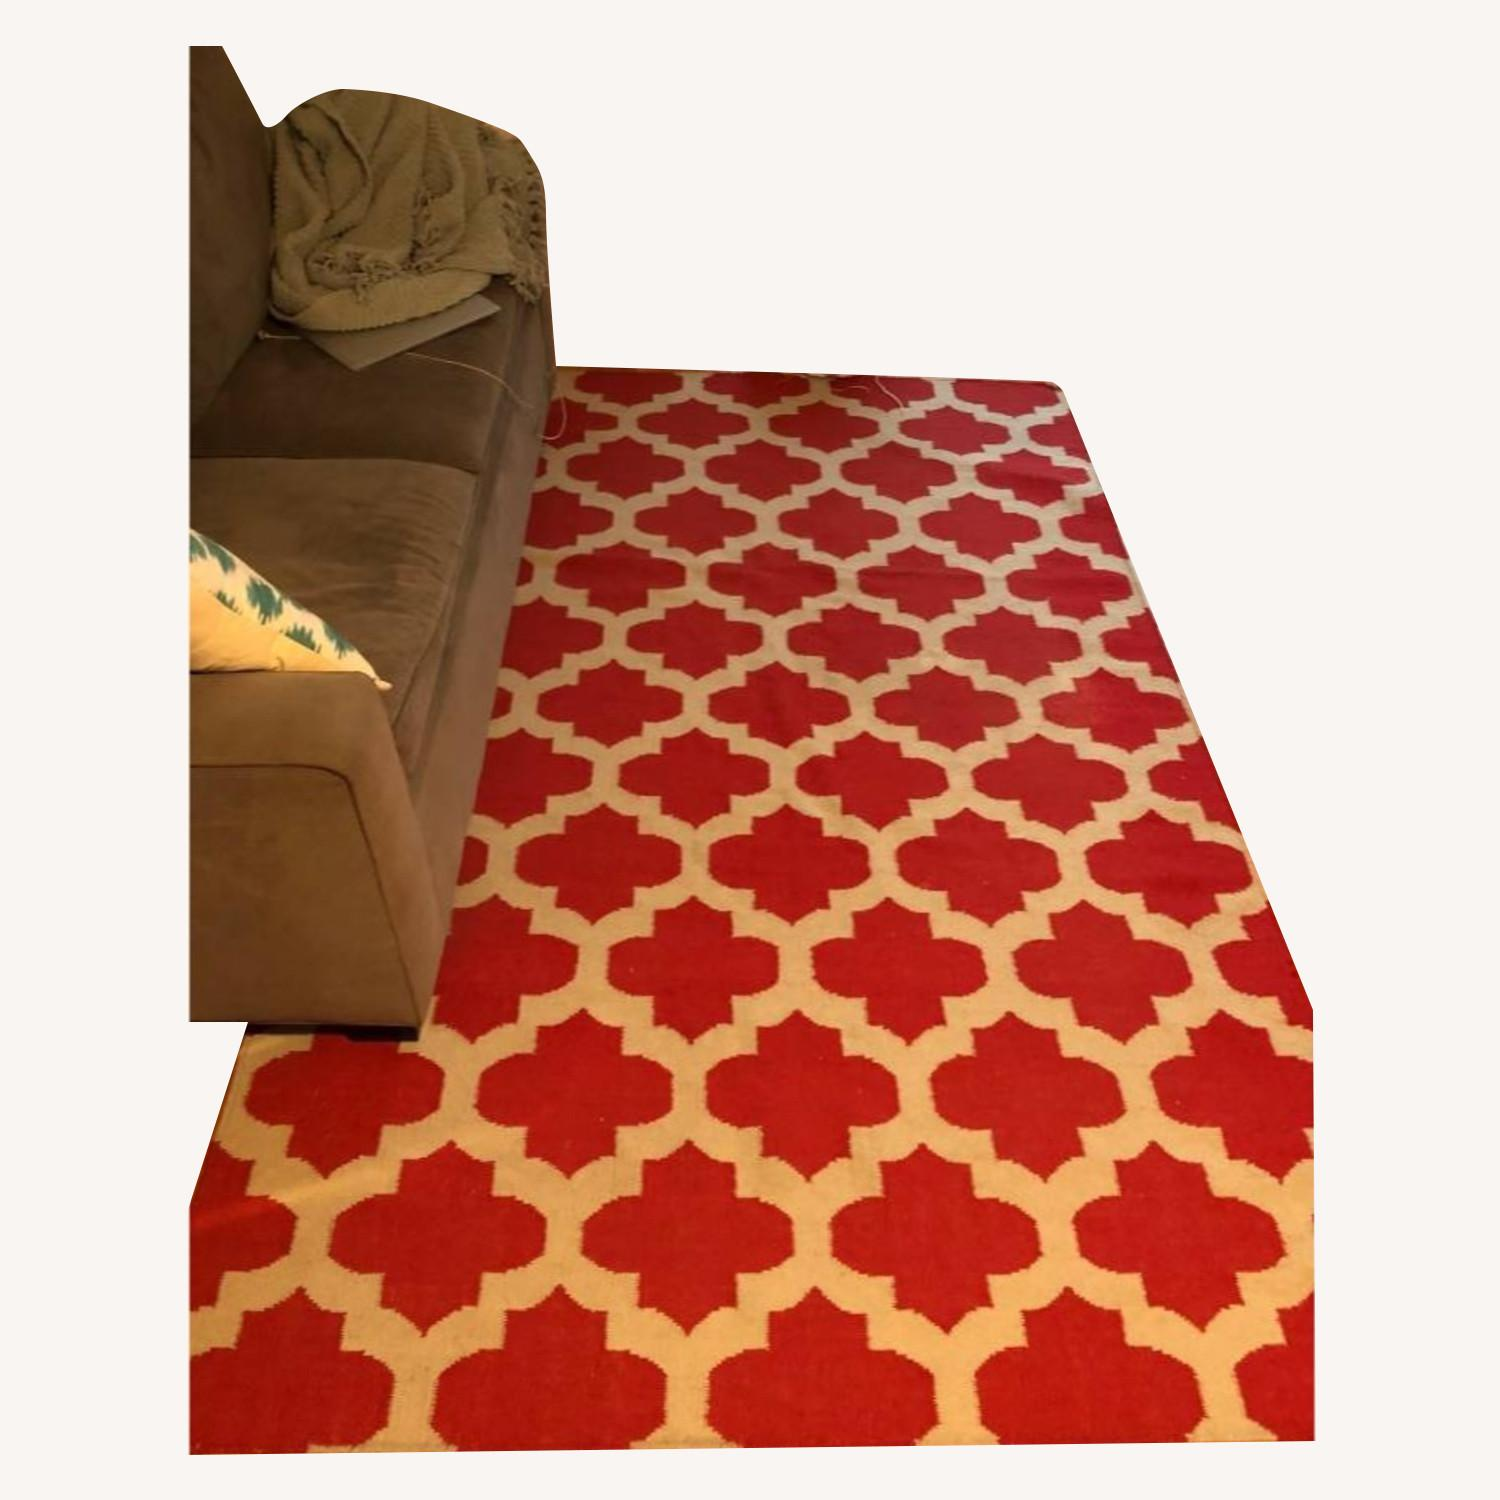 Safavieh Red & White Moroccan Style Rug - image-0